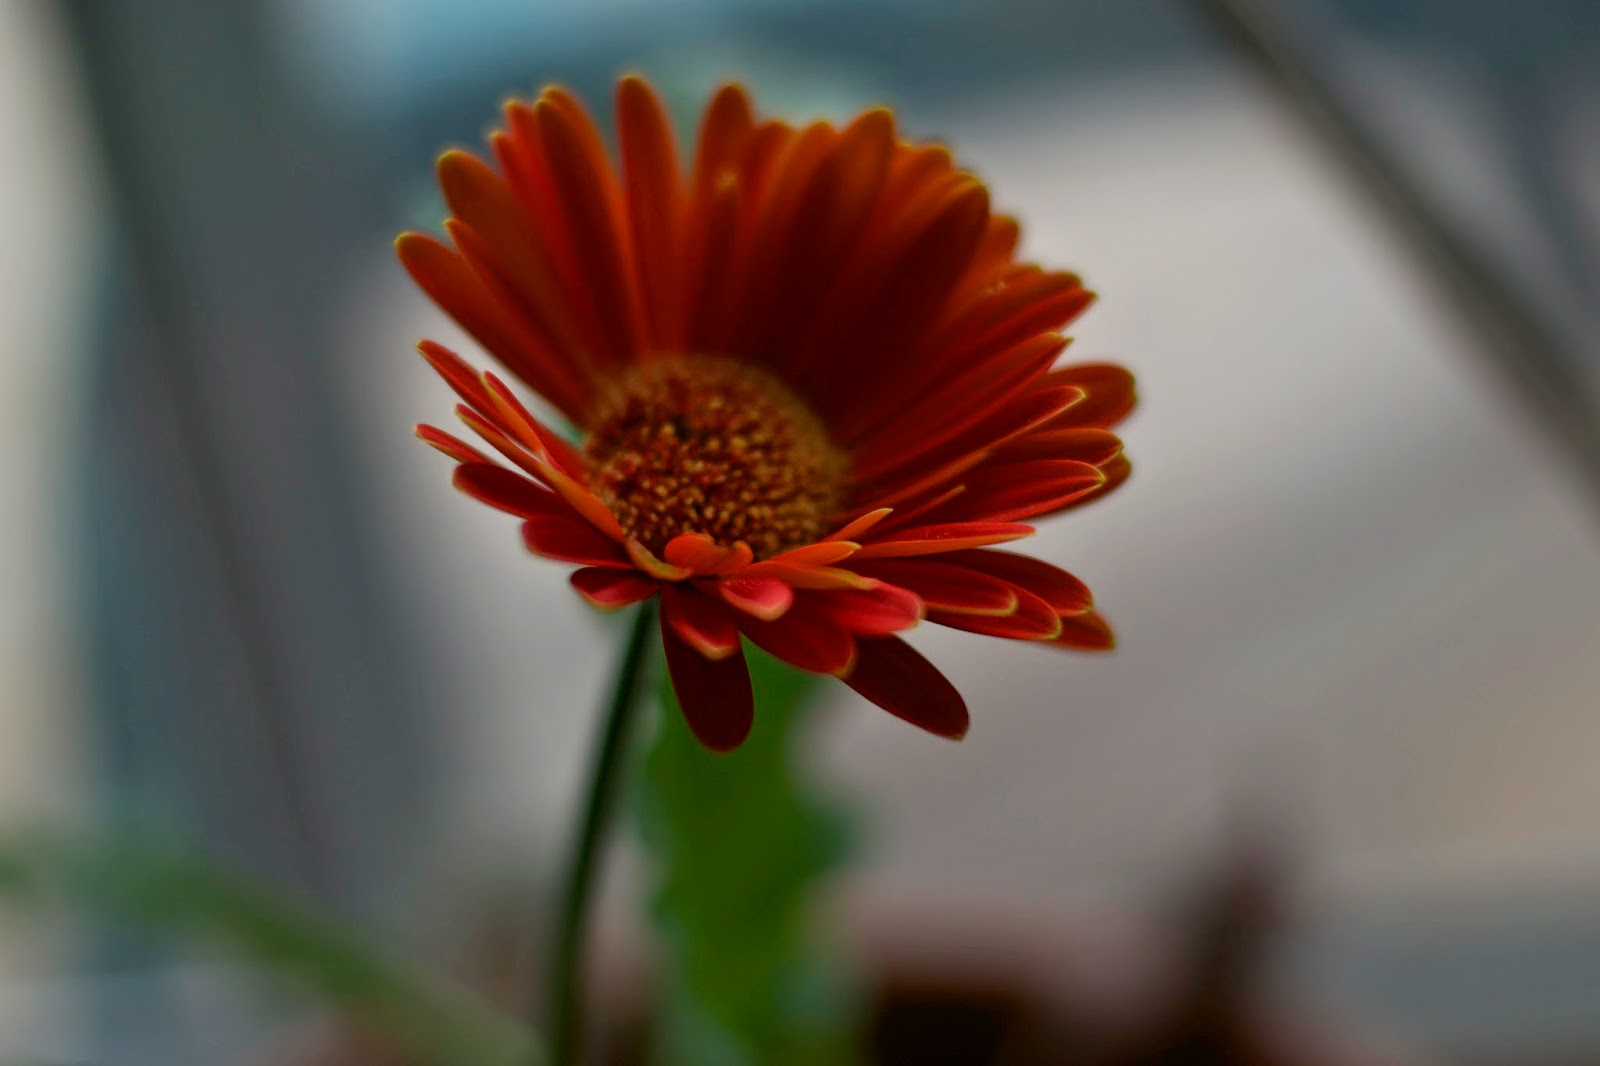 Red gerber daisy, a favor from a friends baby shower last year. It made it through the winter and is happily blooming!